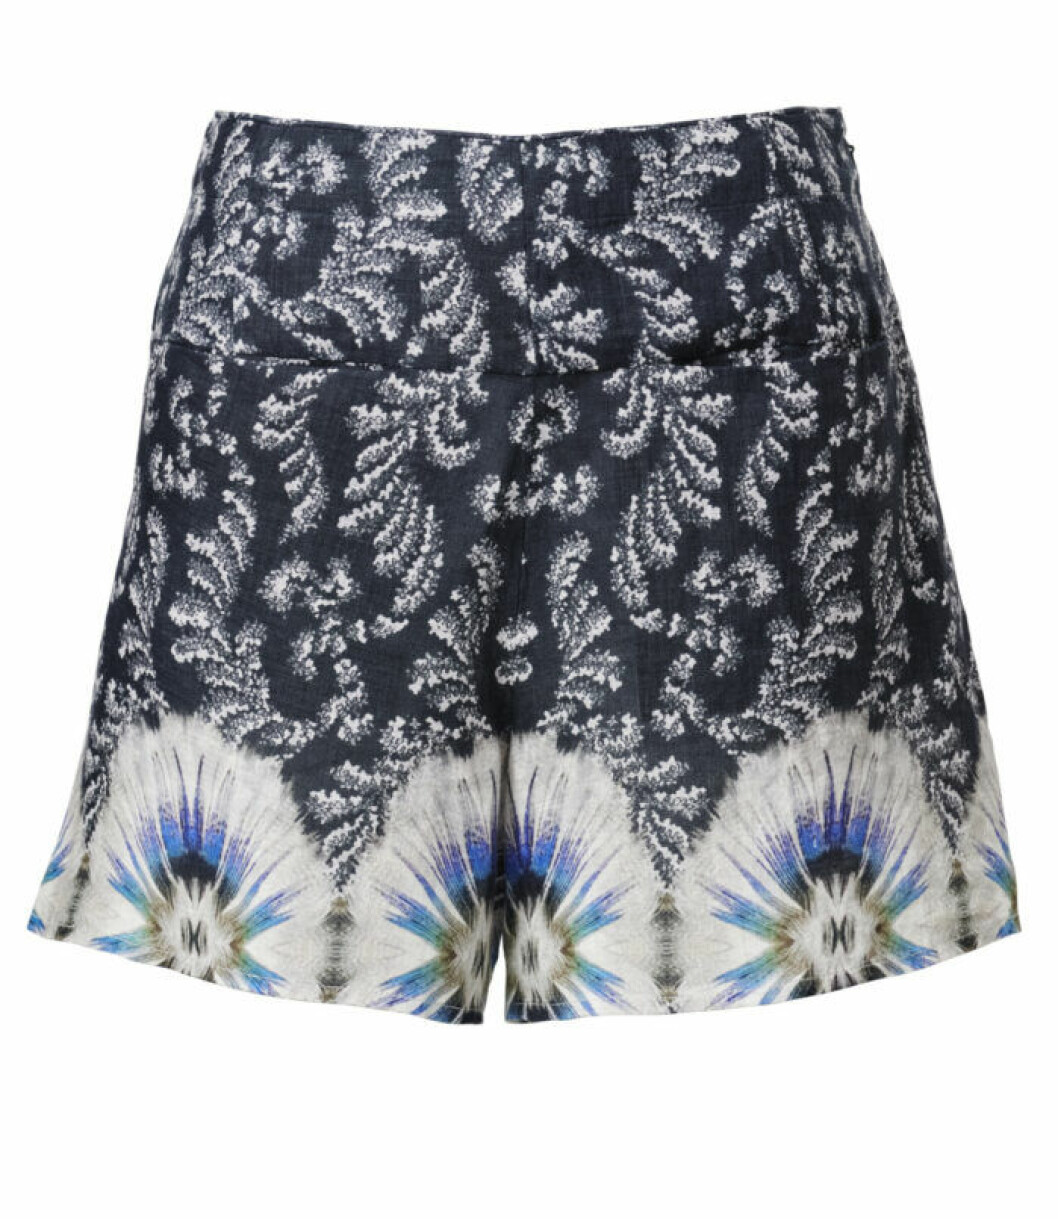 H&M Conscious Exclusive 2019 mönstrade shorts